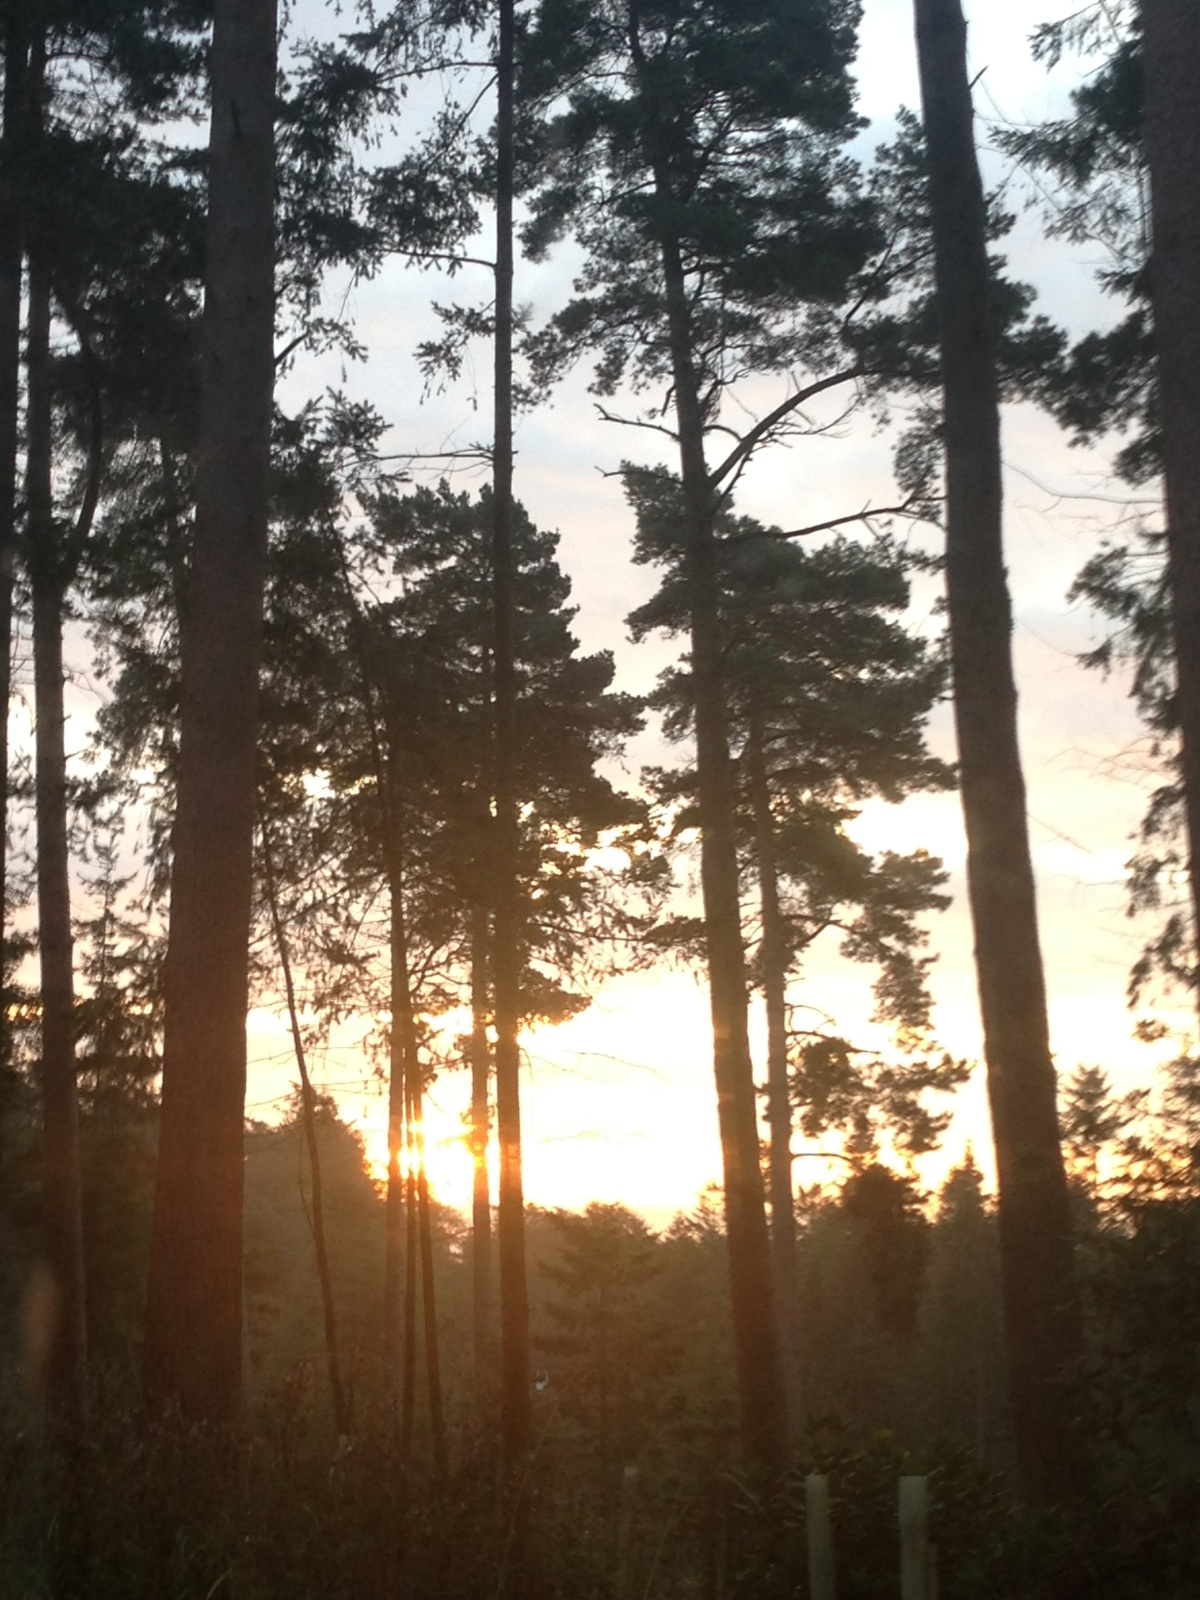 Our first family holiday – Center Parcs, Longleat